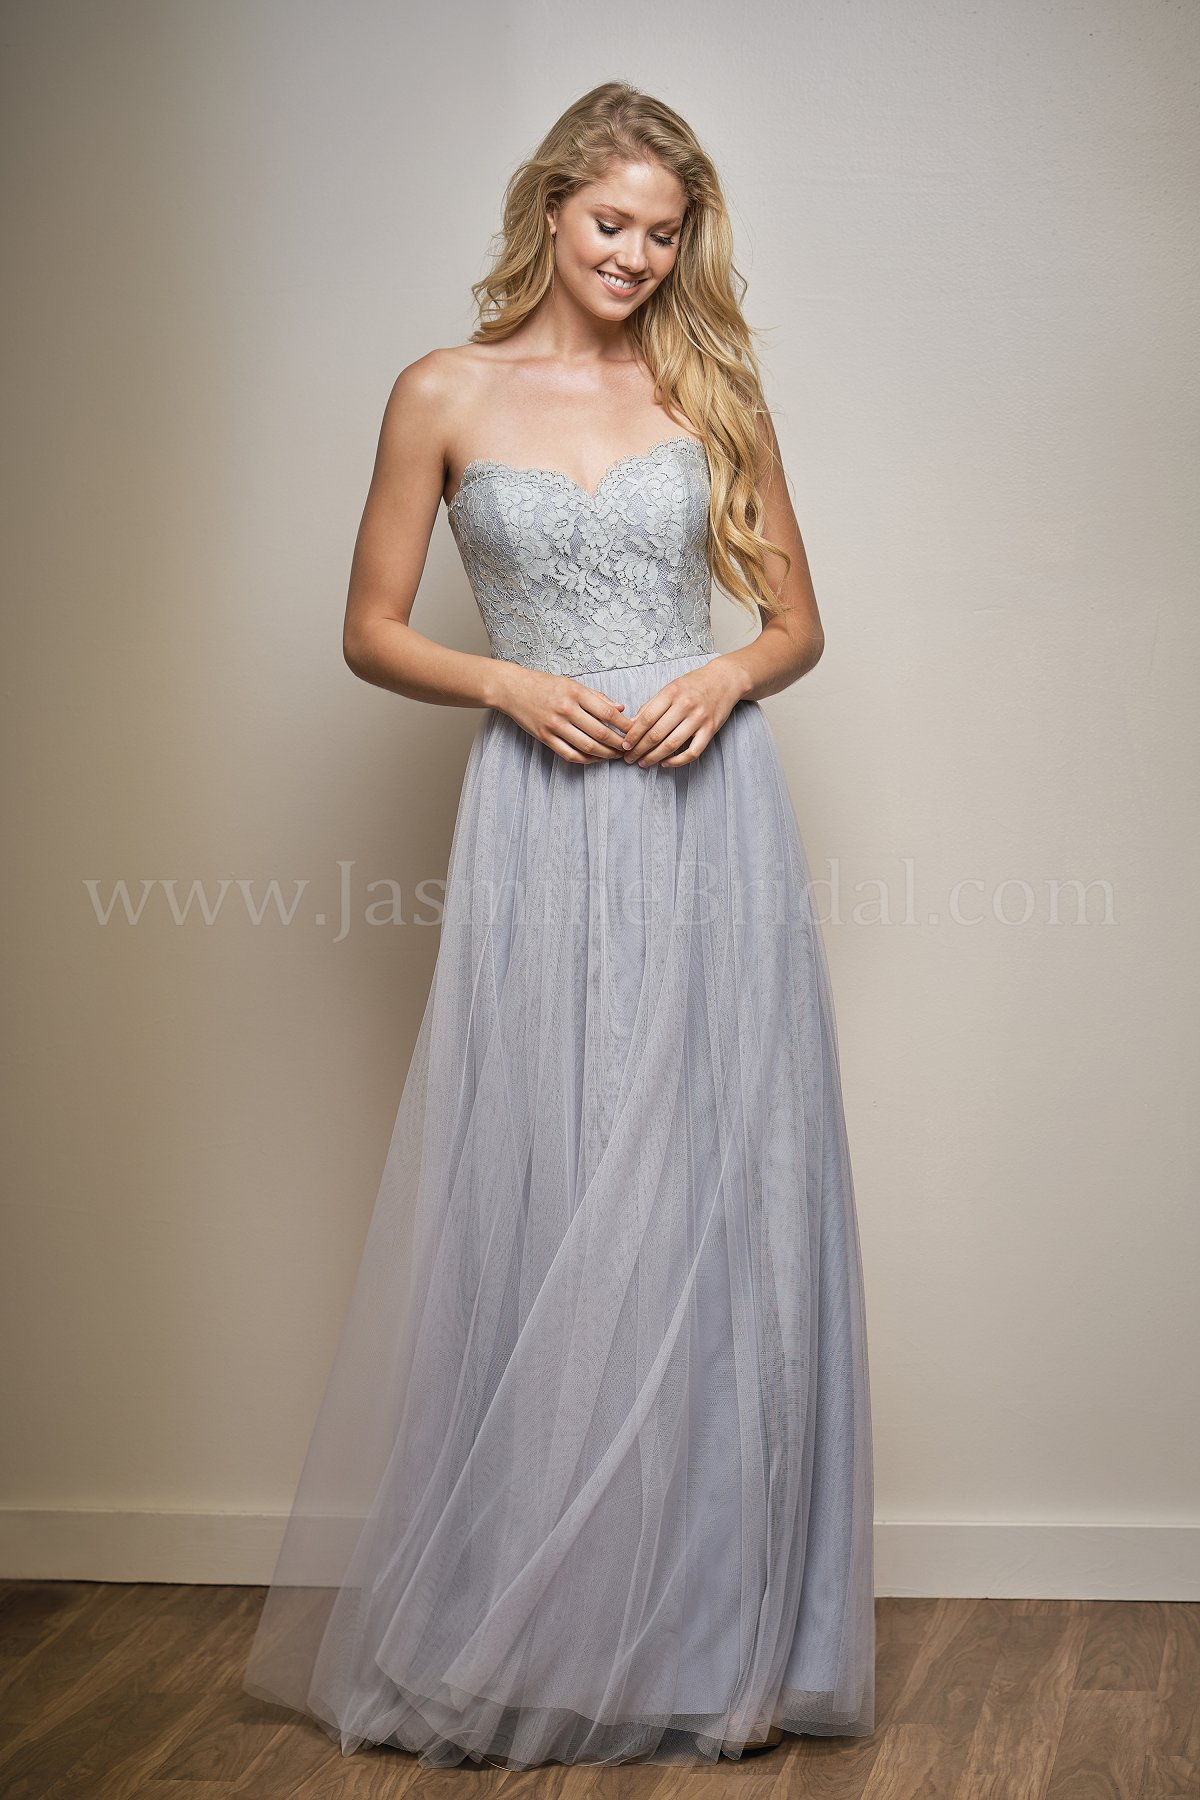 Jasmine bridal designer wedding dresses dressimg l204006 simple strapless sweetheart neckline bridesmaid dress ombrellifo Images